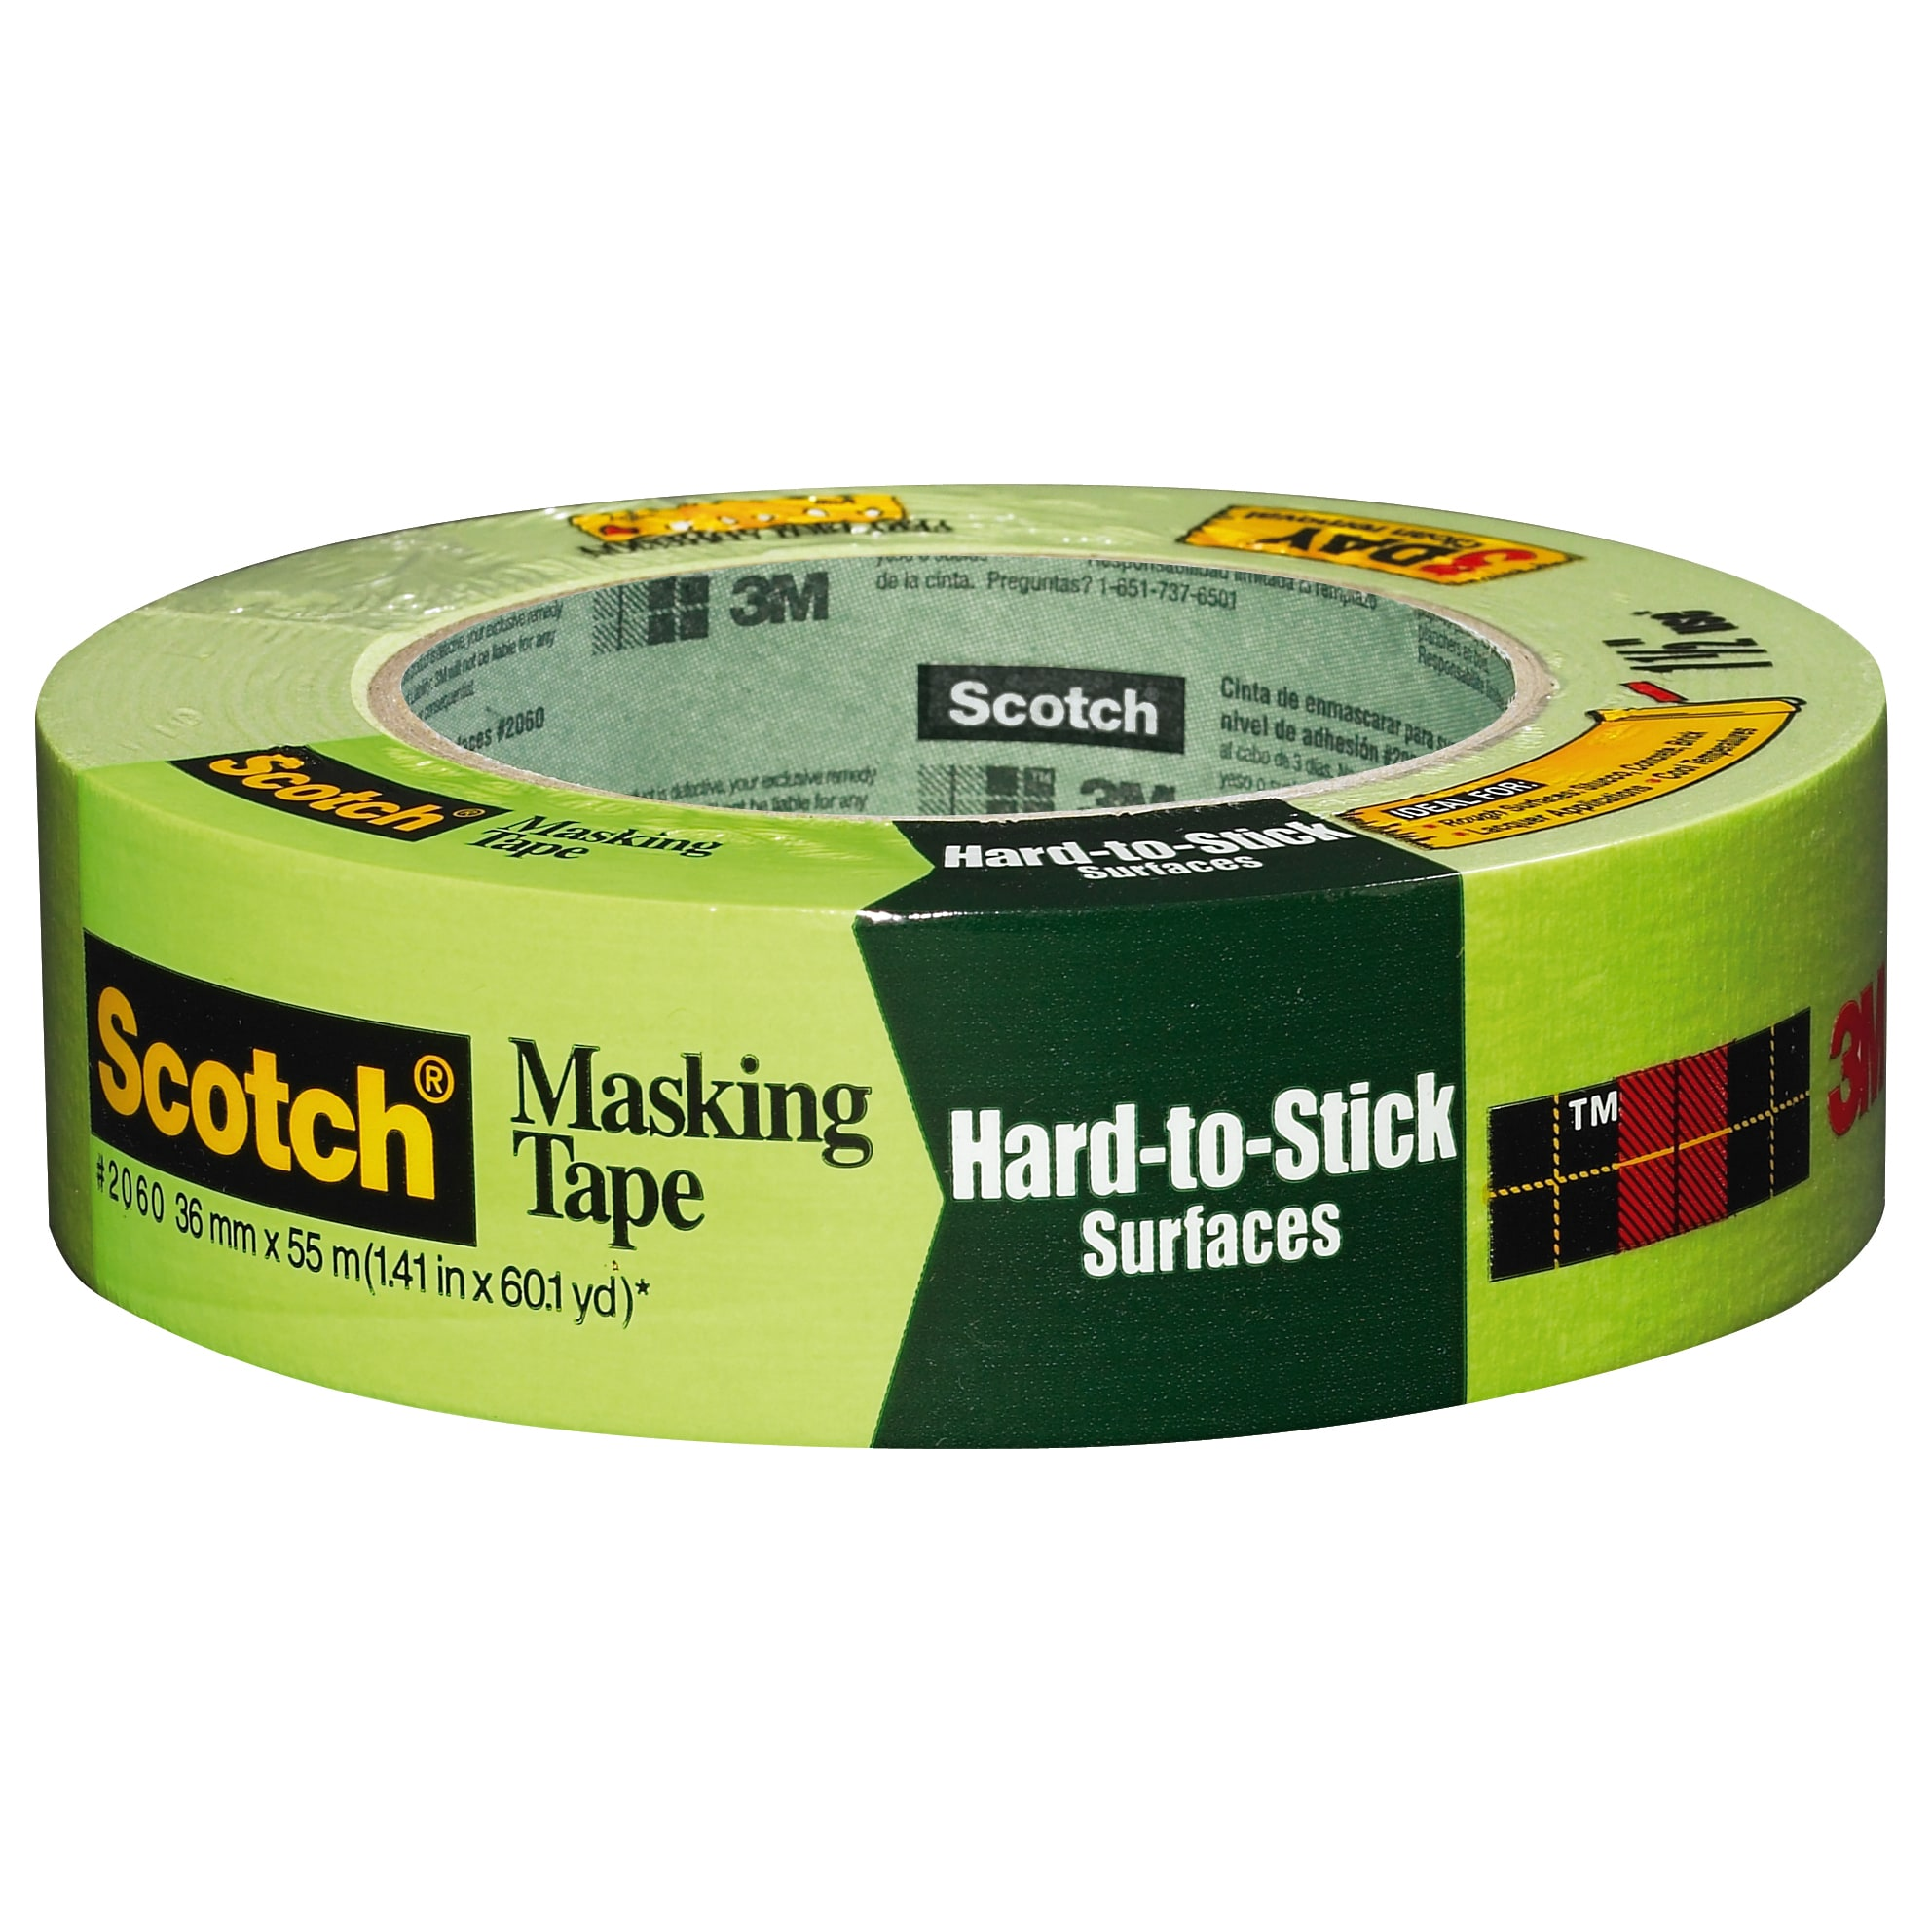 Scotch Rough Surface Extra Strength Masking Tape 2060 1.41 inch x 60 yard 1